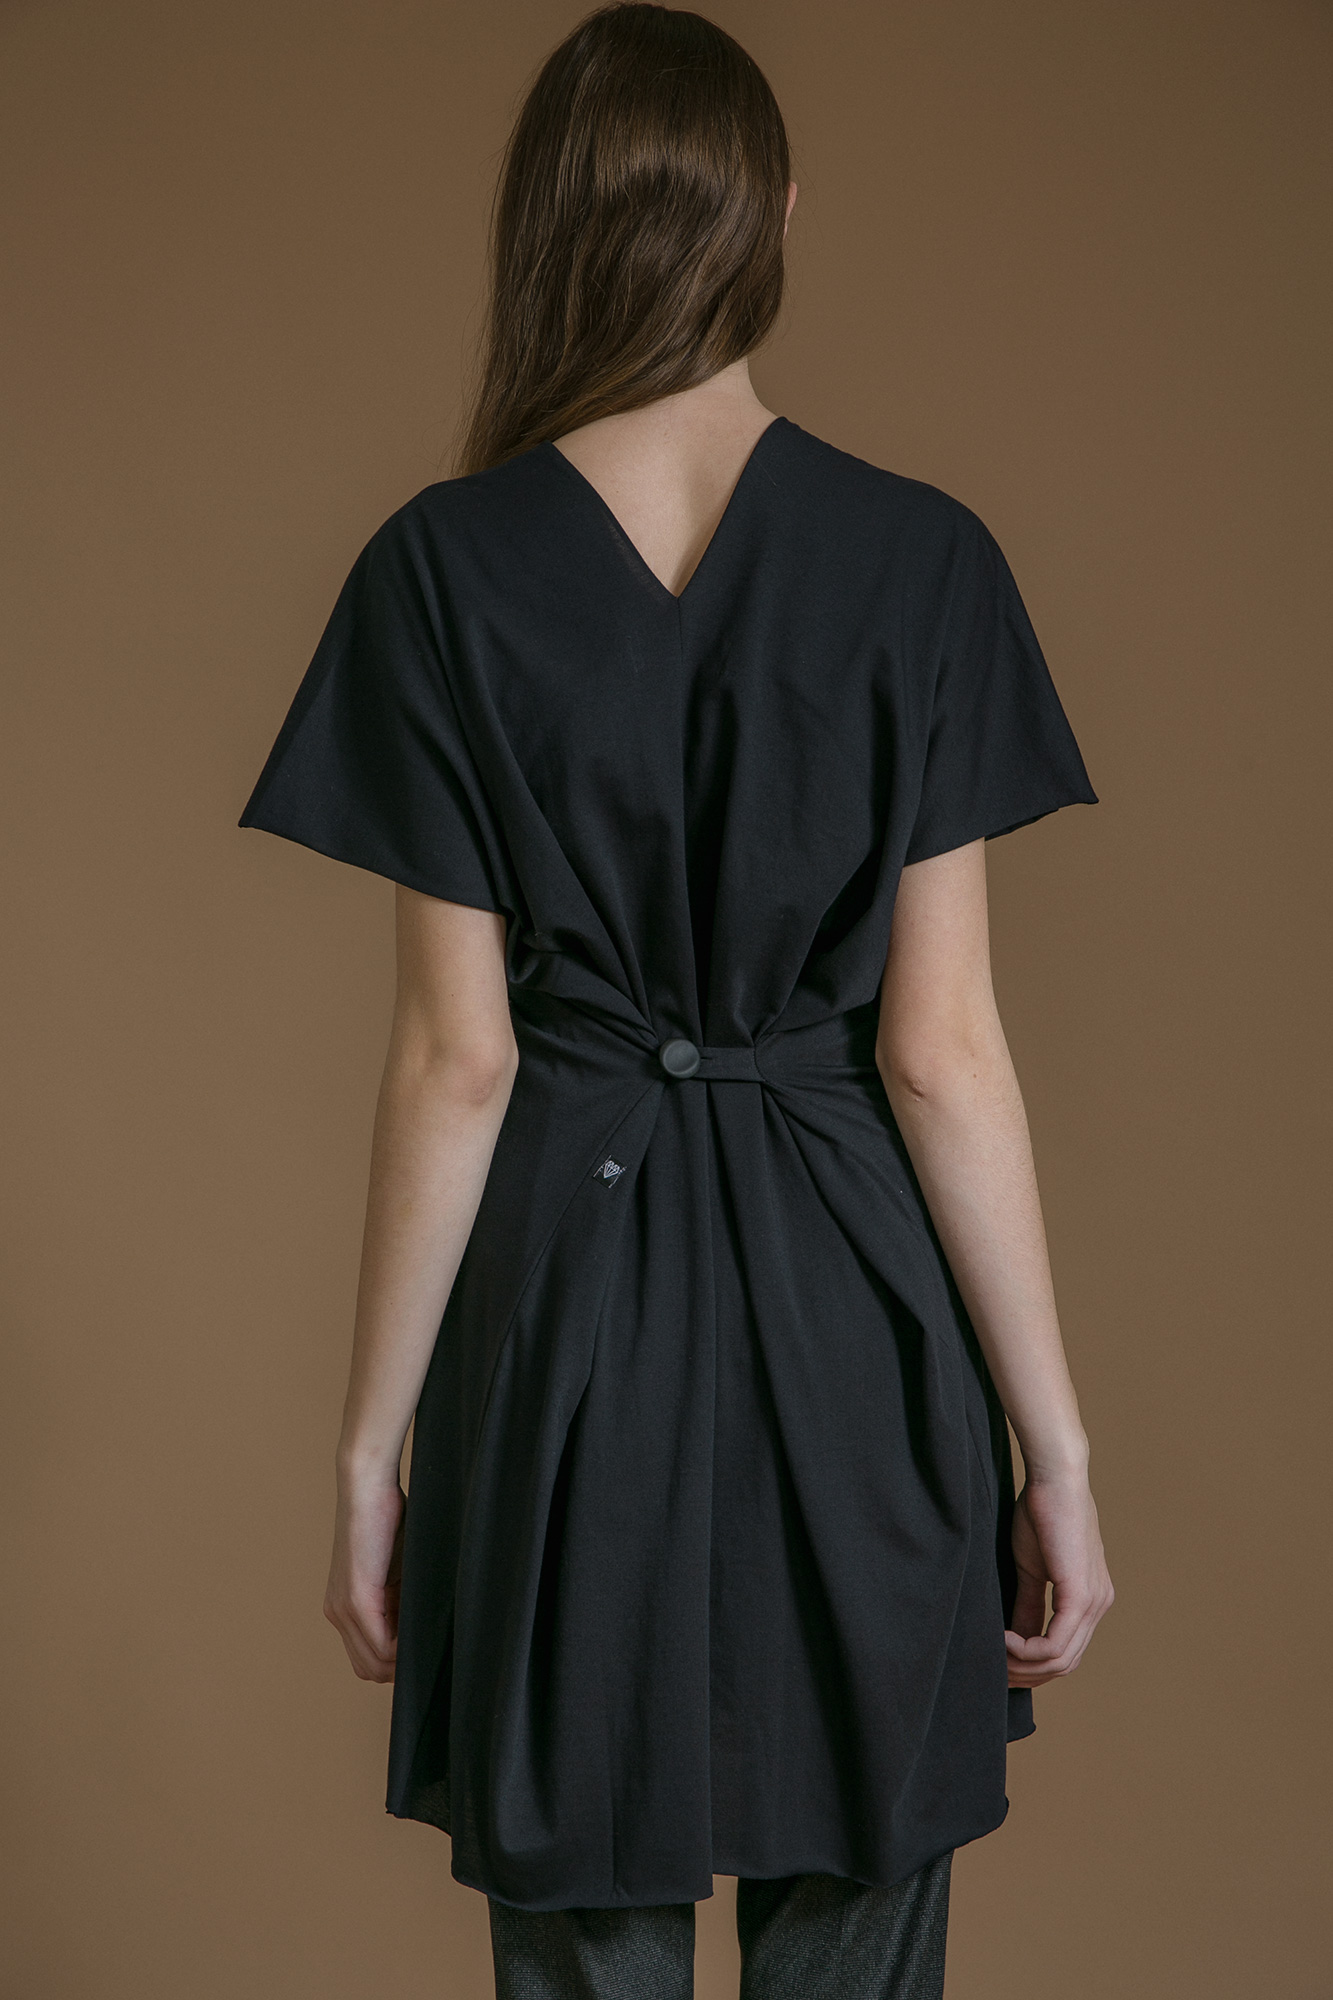 wrns_basics_gombik-dress_15